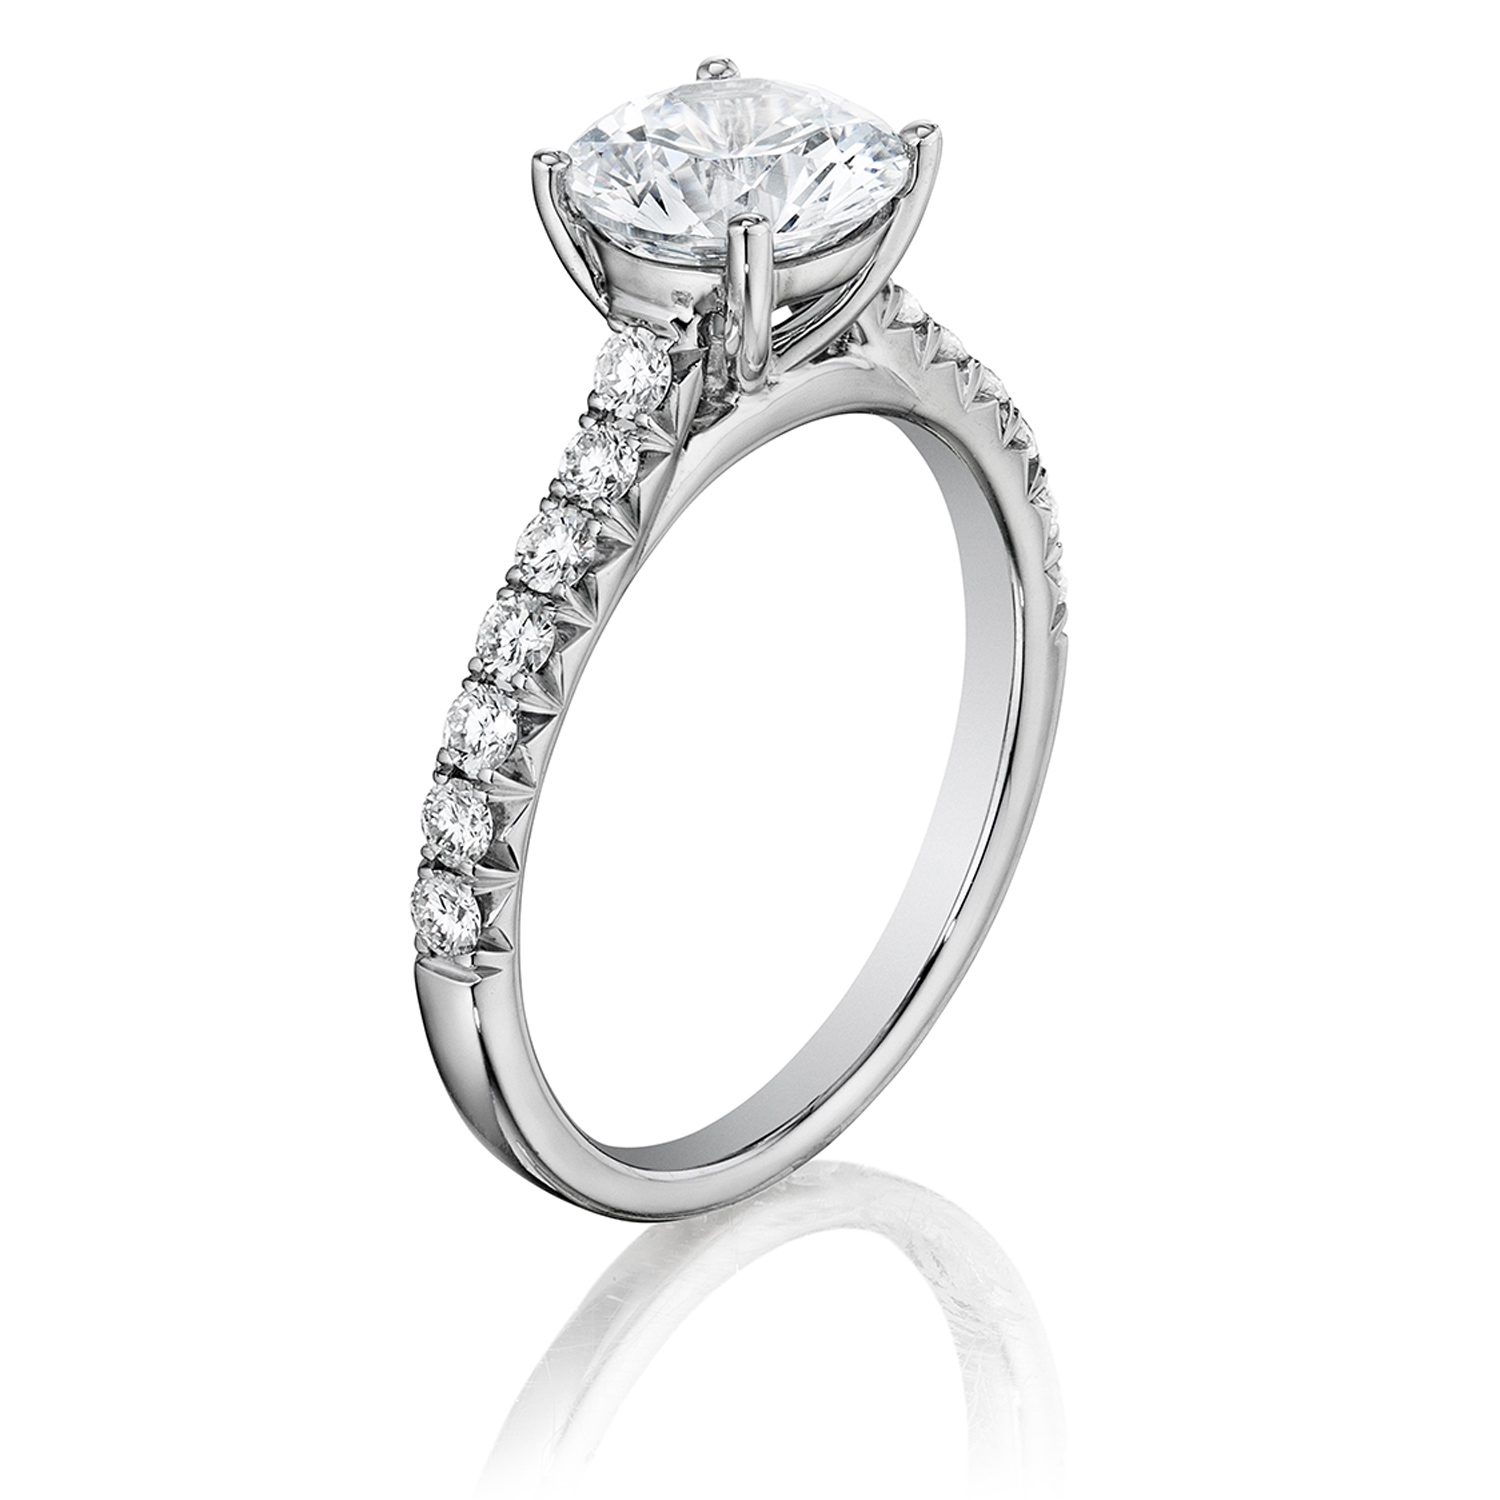 lugaro canadian carat diamond jewellery engagement ring bridal rings solitaire solitaireringsale canadiandiamond